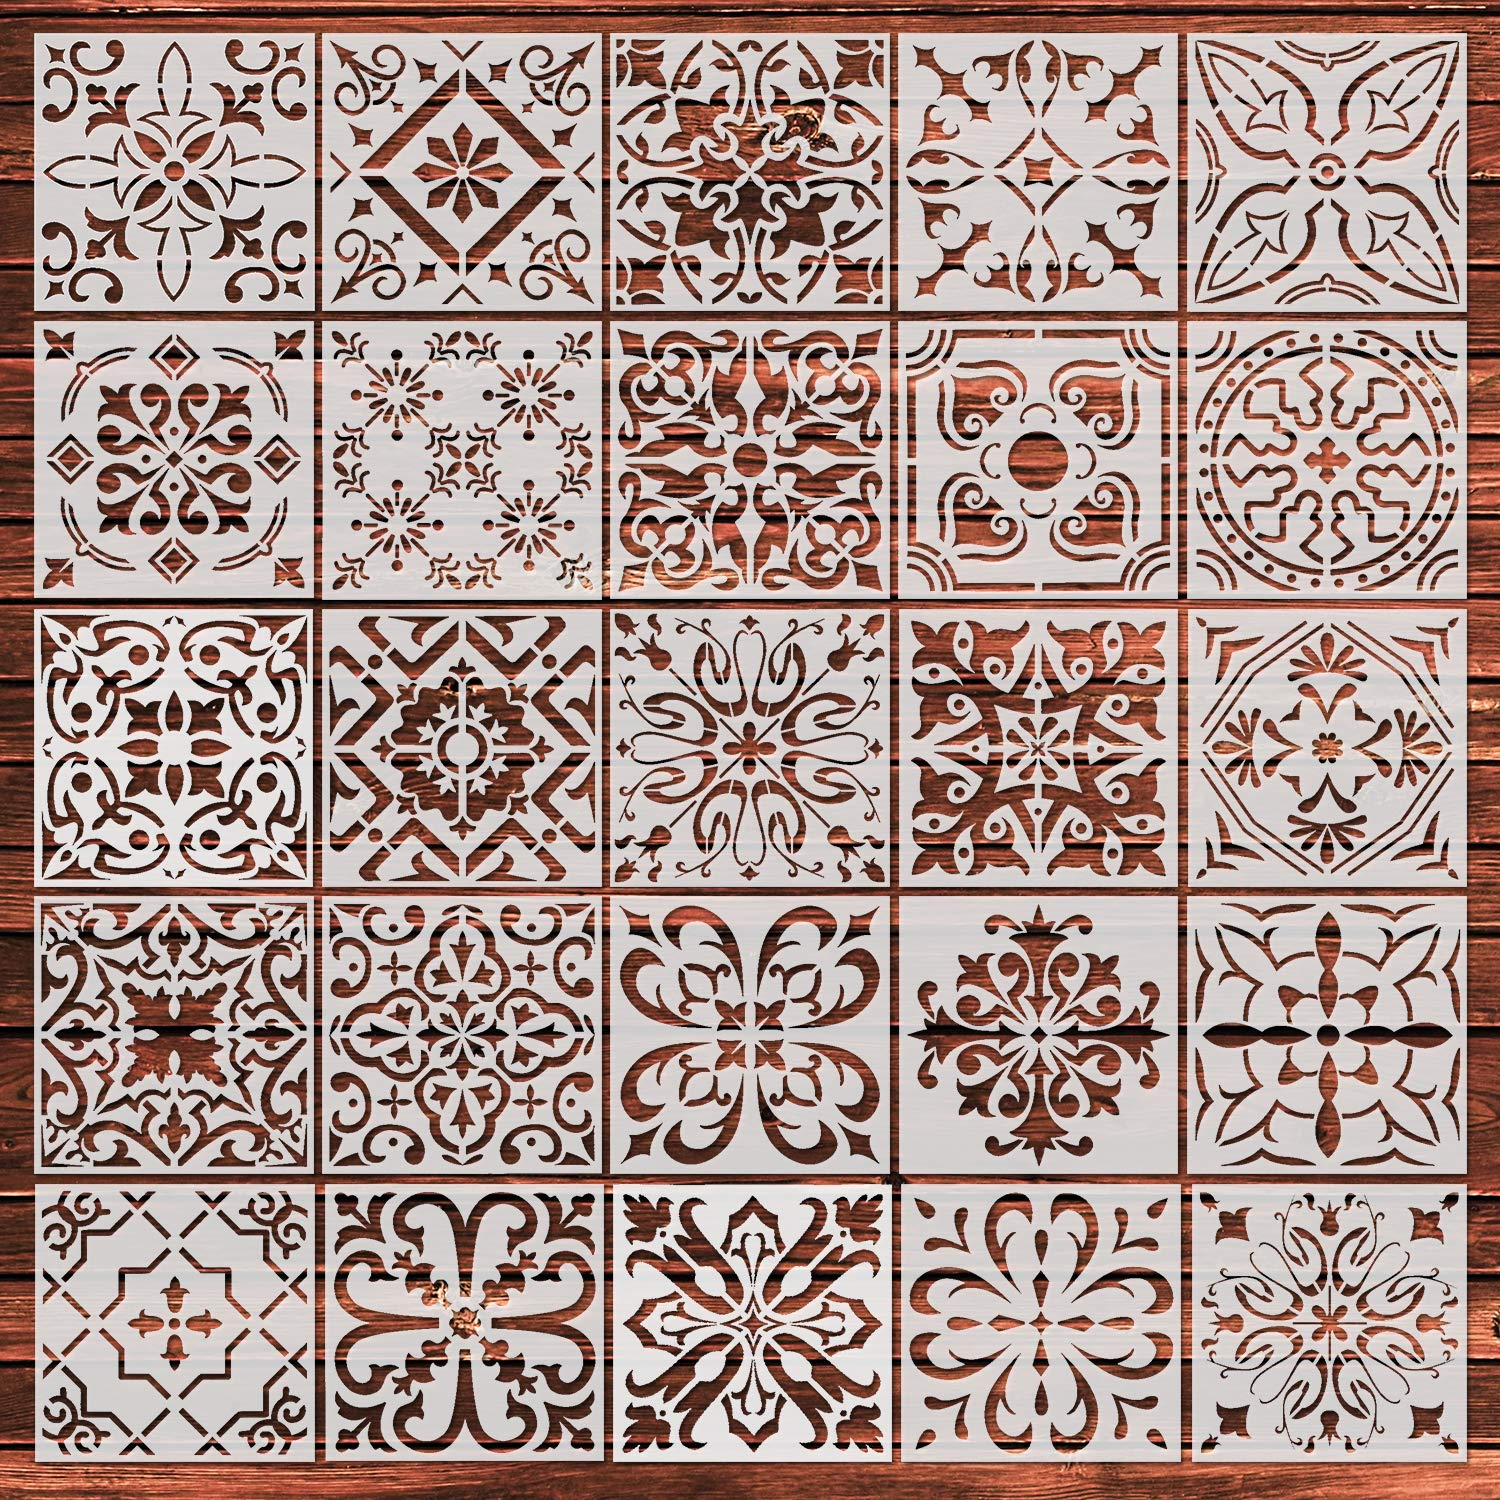 YUEAON 25-Pack (6x6 Inch) Painting Stencils for Floor Wall Tile Fabric Wood Burning Art&Craft Supplies Mandala Template-reuseable by YUEAON